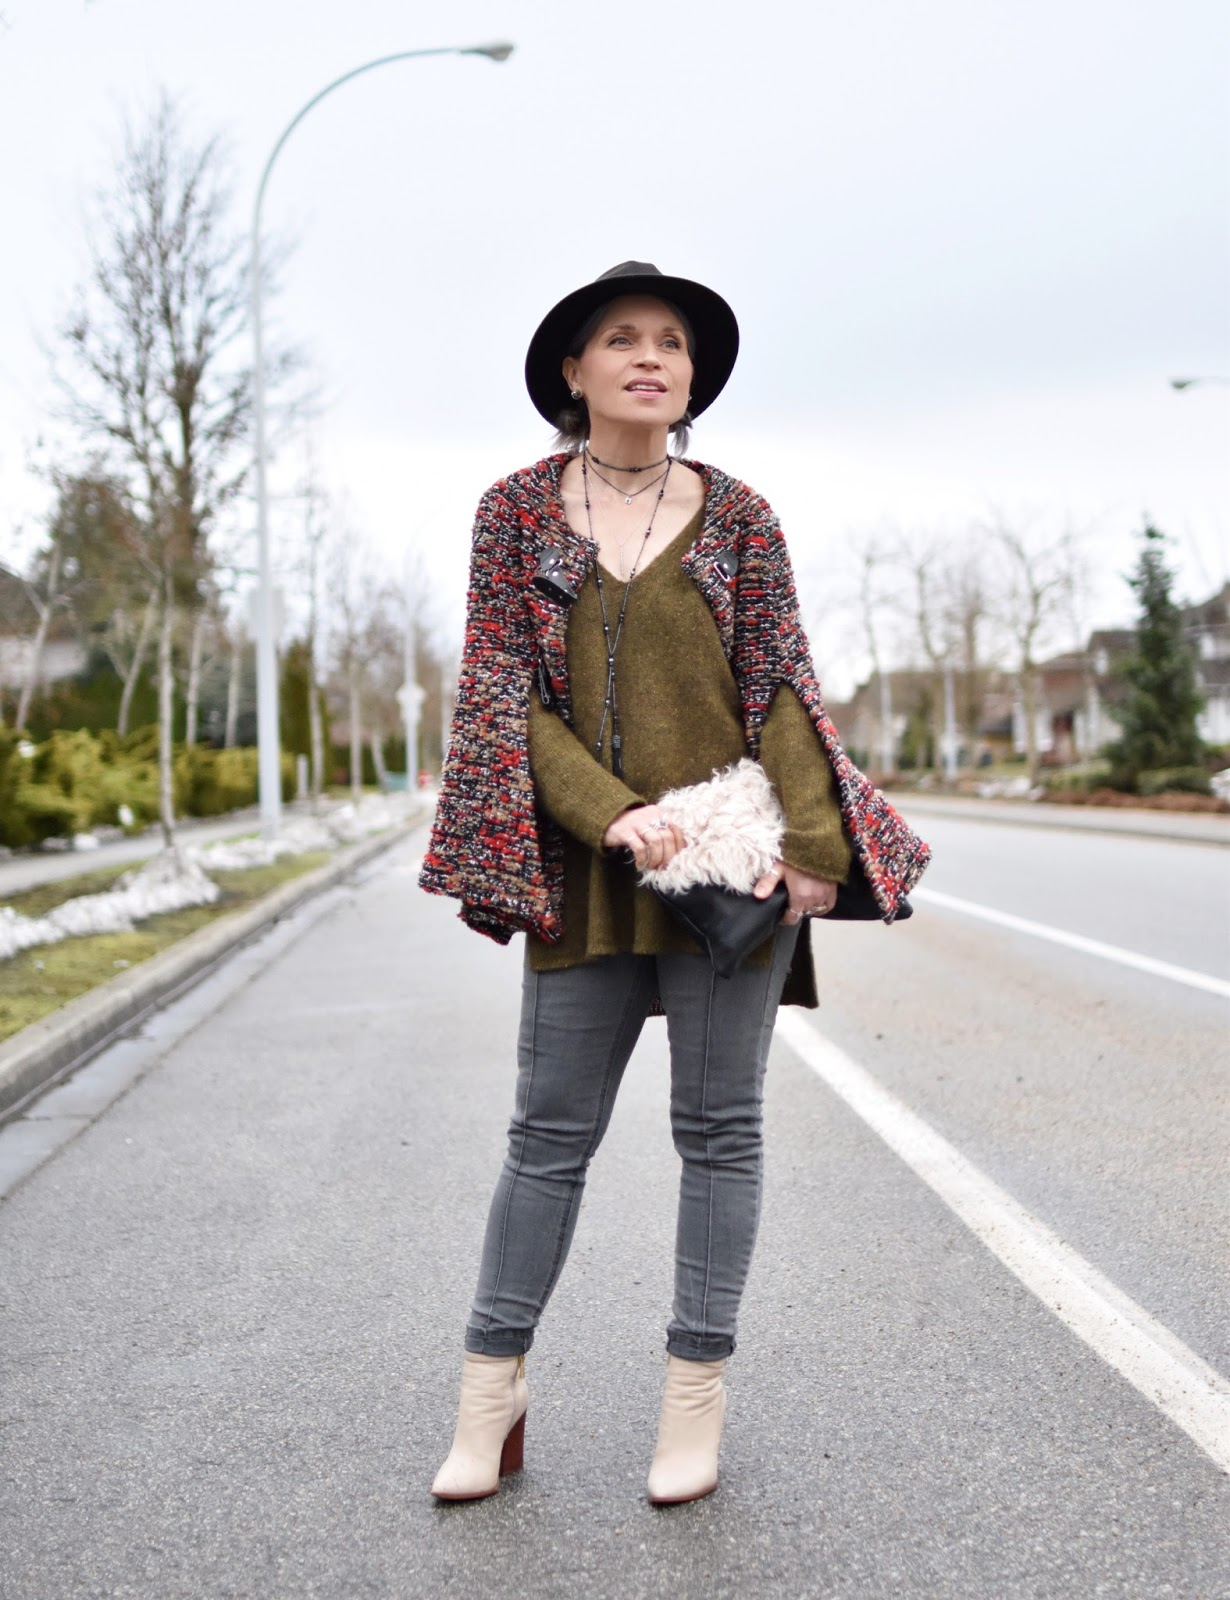 Monika Faulkner outfit inspiration - styling a tunic sweater with a cape, skinny jeans, ivory booties, and a fedora